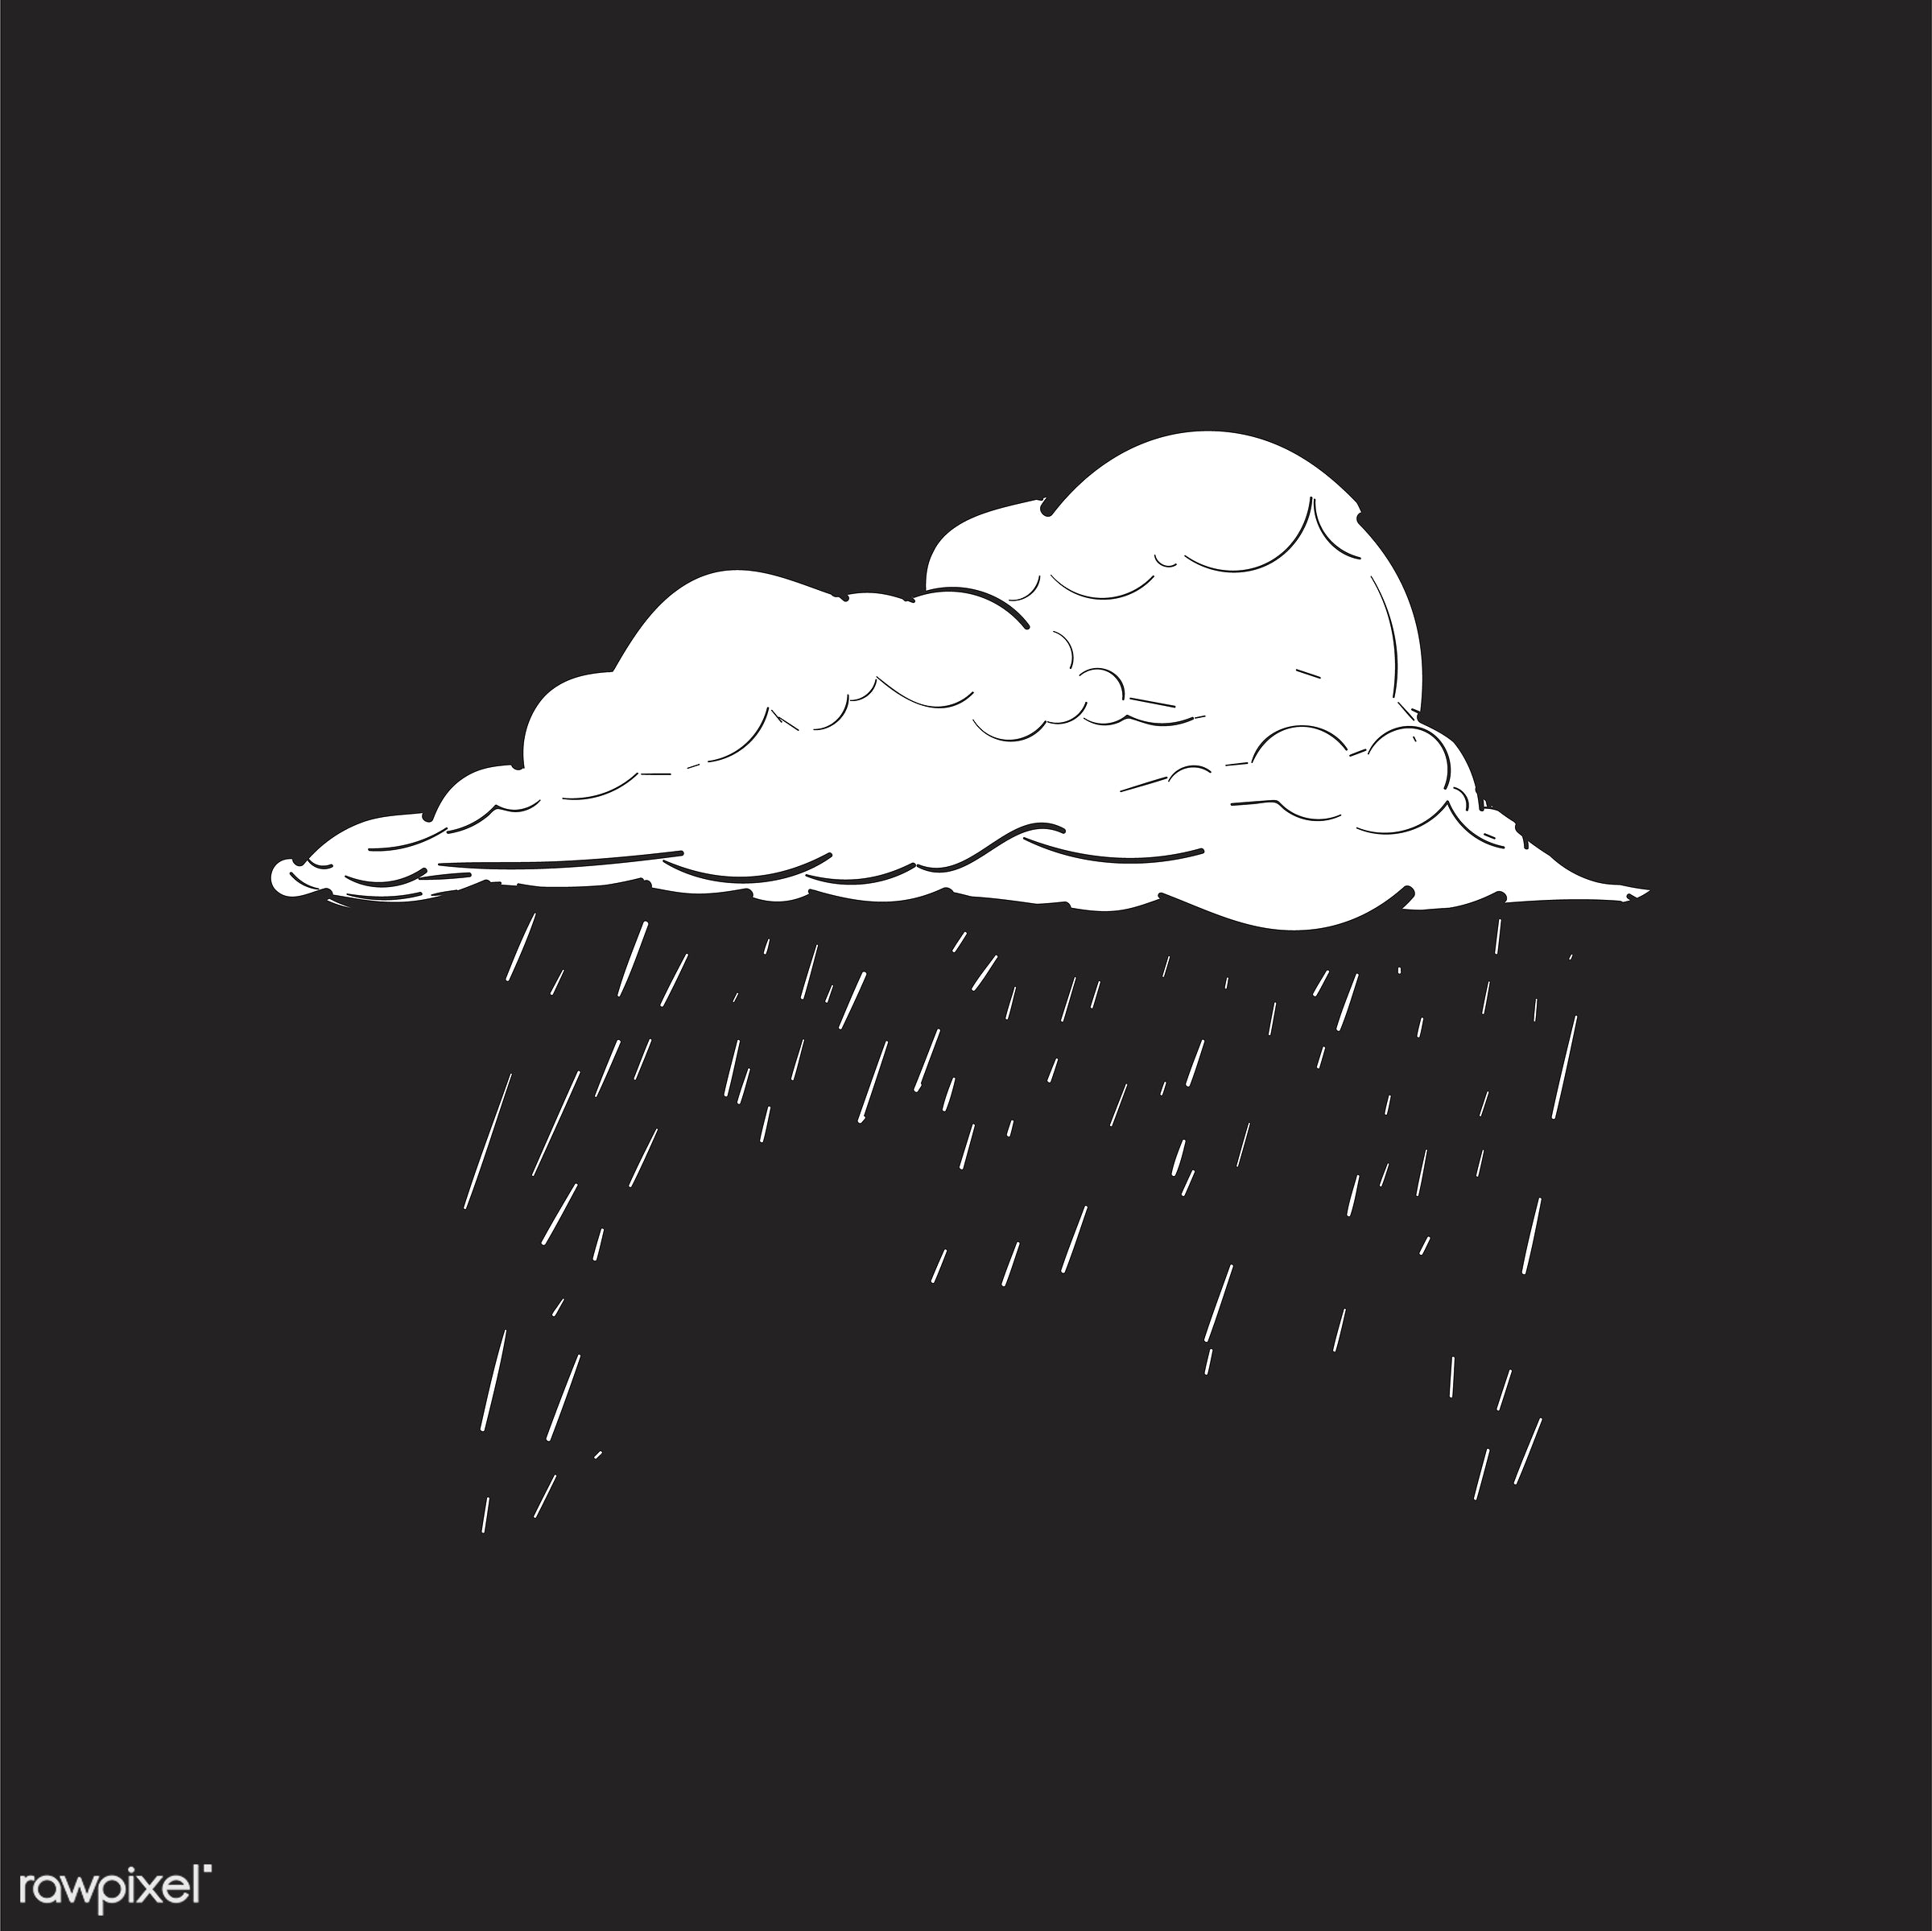 Hand drawing illustration of lifestyle concept - rain, time, artwork, cloud, creativity, design, draw, drawing, drawn, fail...